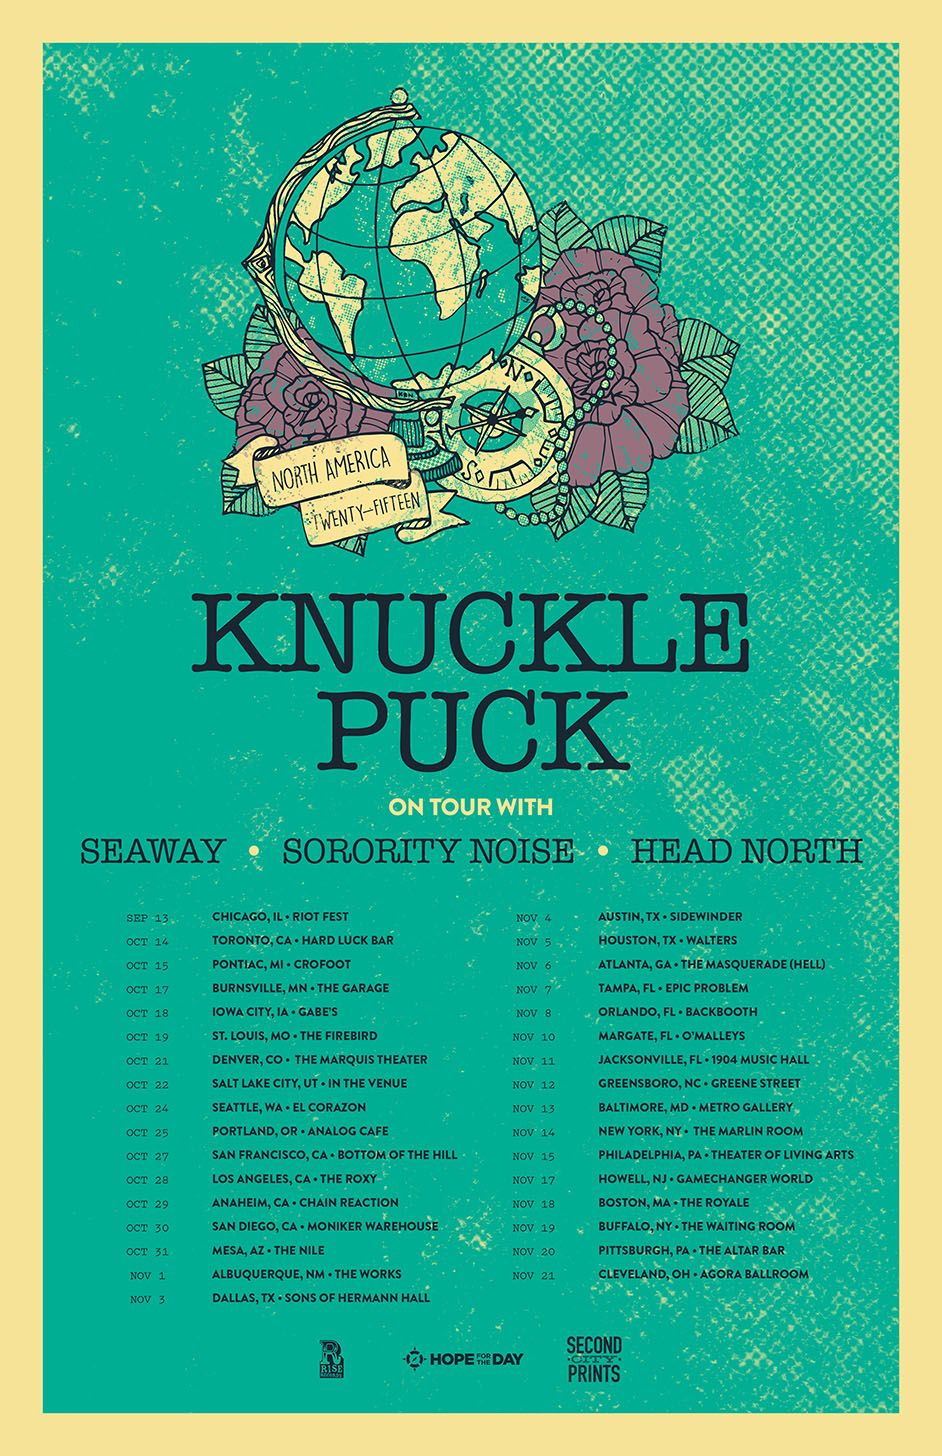 Pin by Tyler Price on Gig Posters in 2019 | Pop punk bands, Pop punk